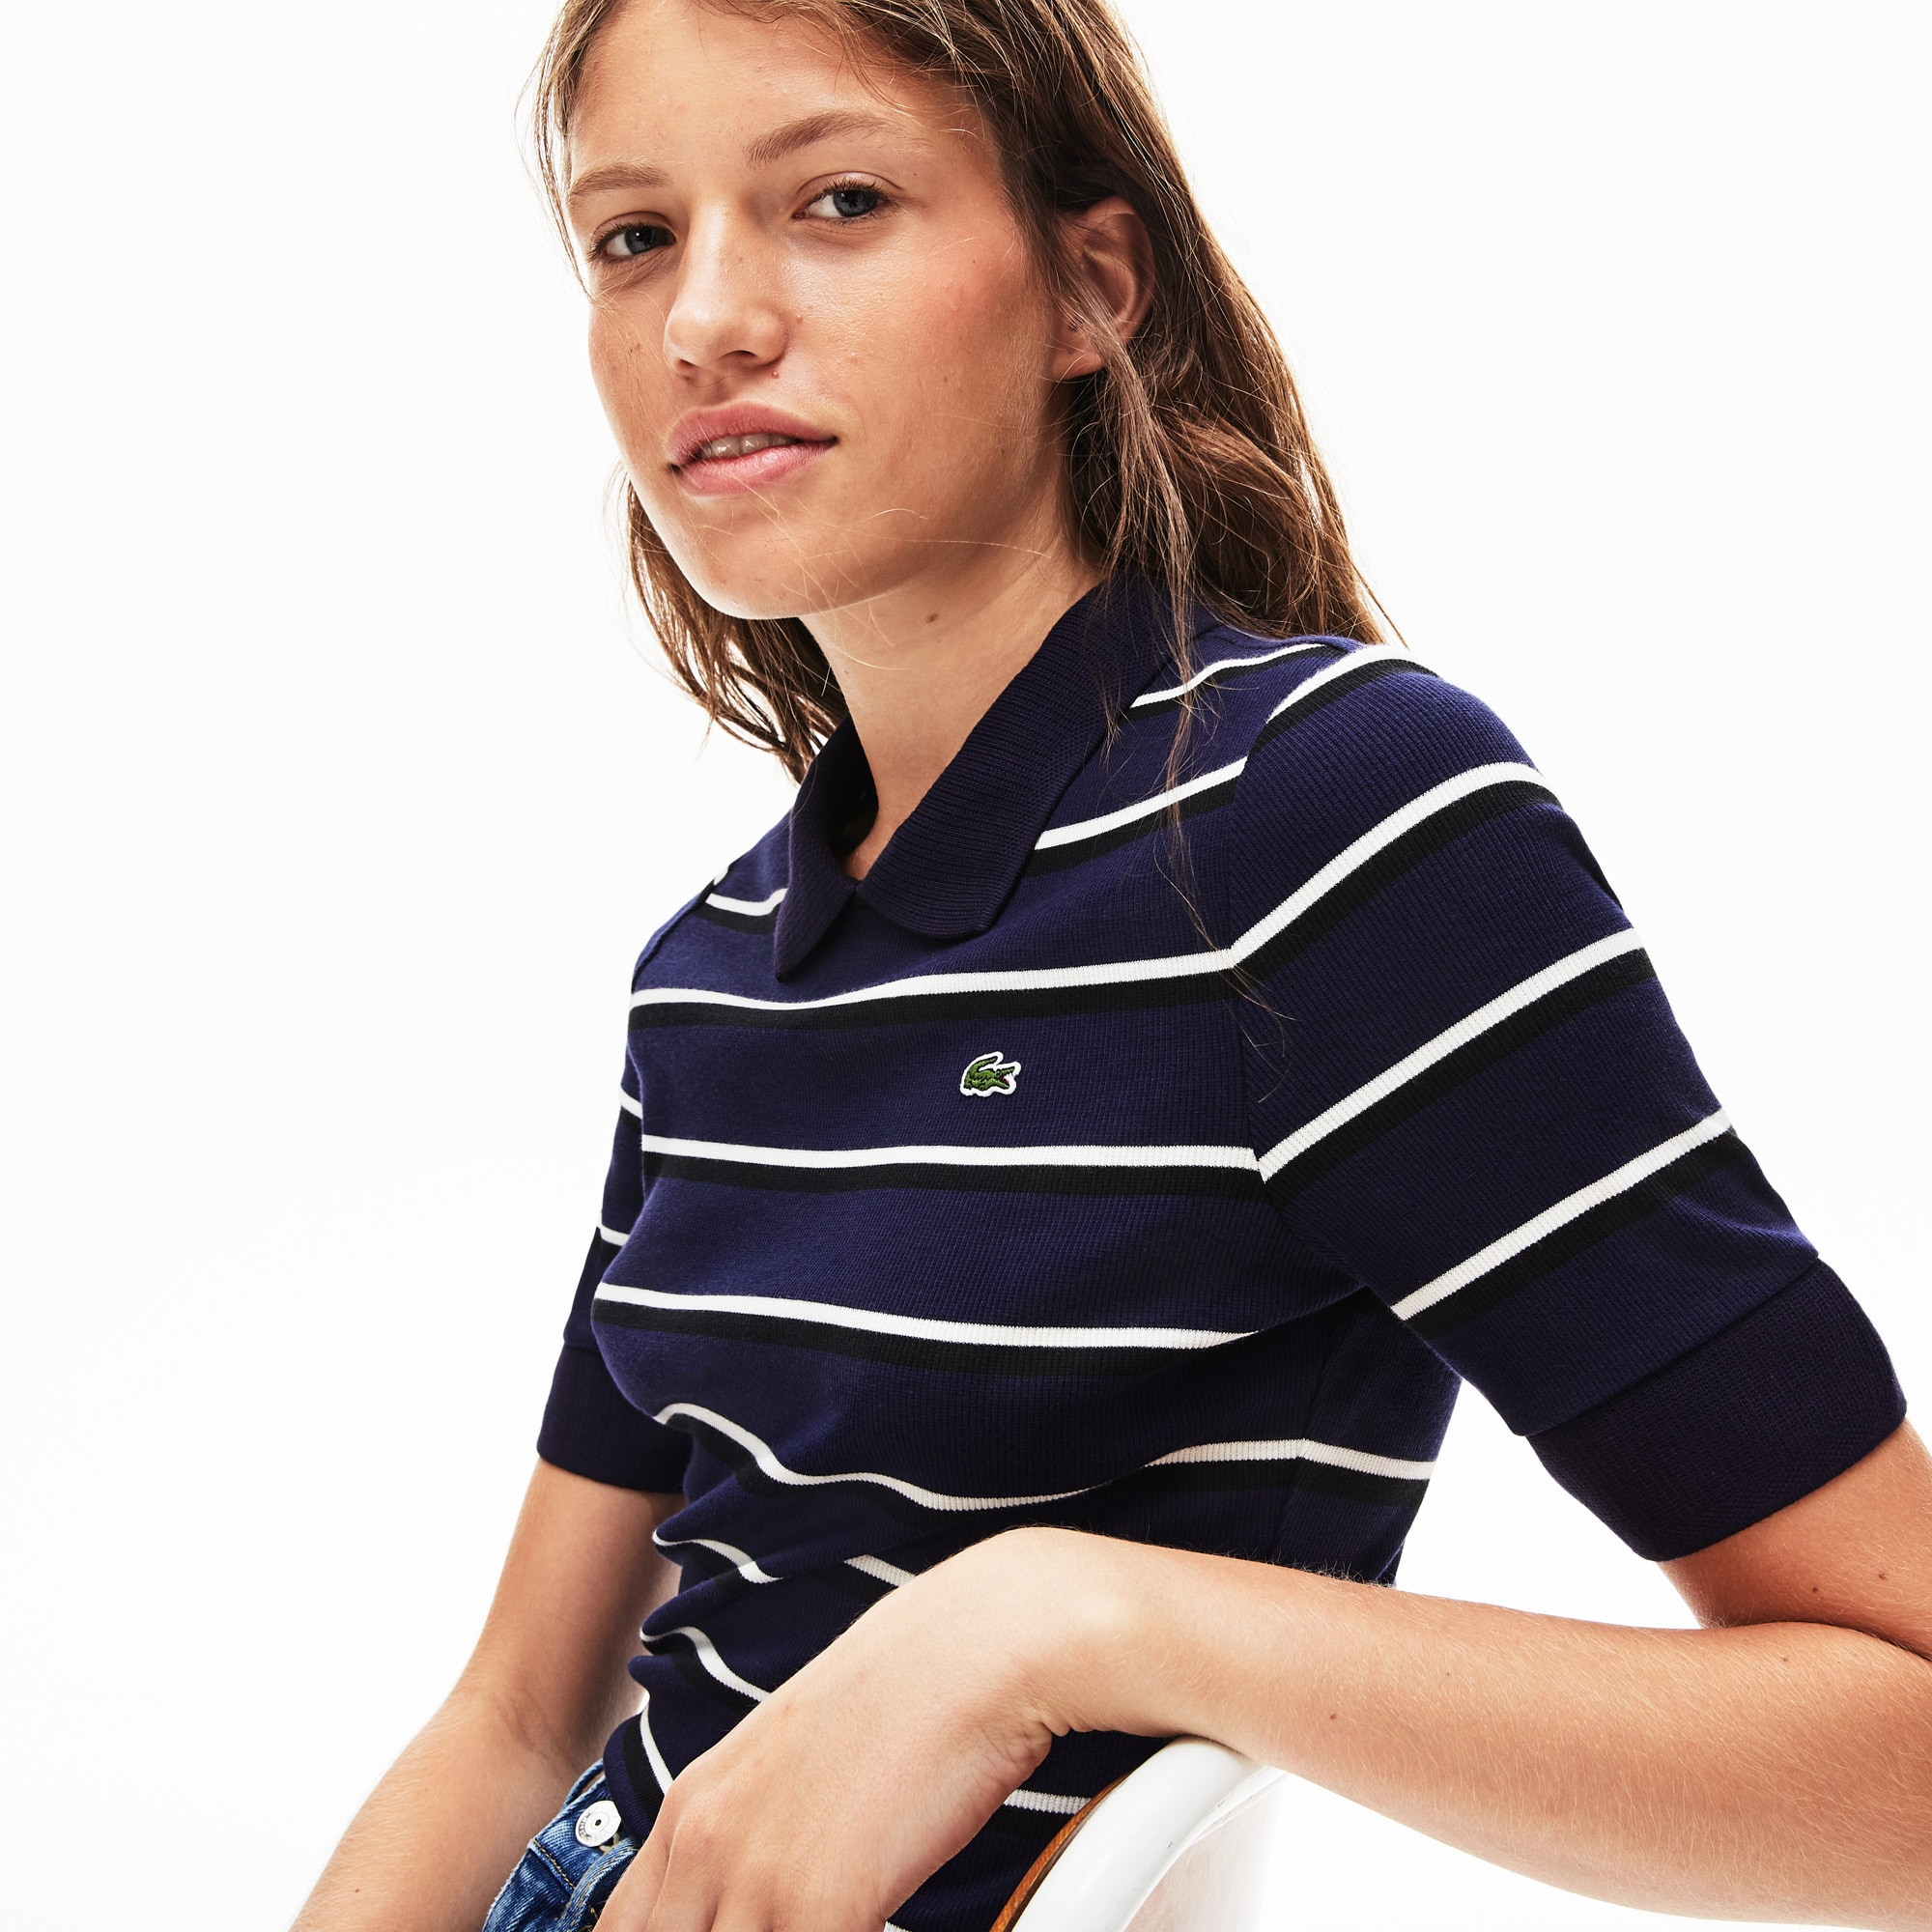 Live Slim Fit Shirt Ribbed Women's Lacoste Striped Knit Polo OXZPkiuT